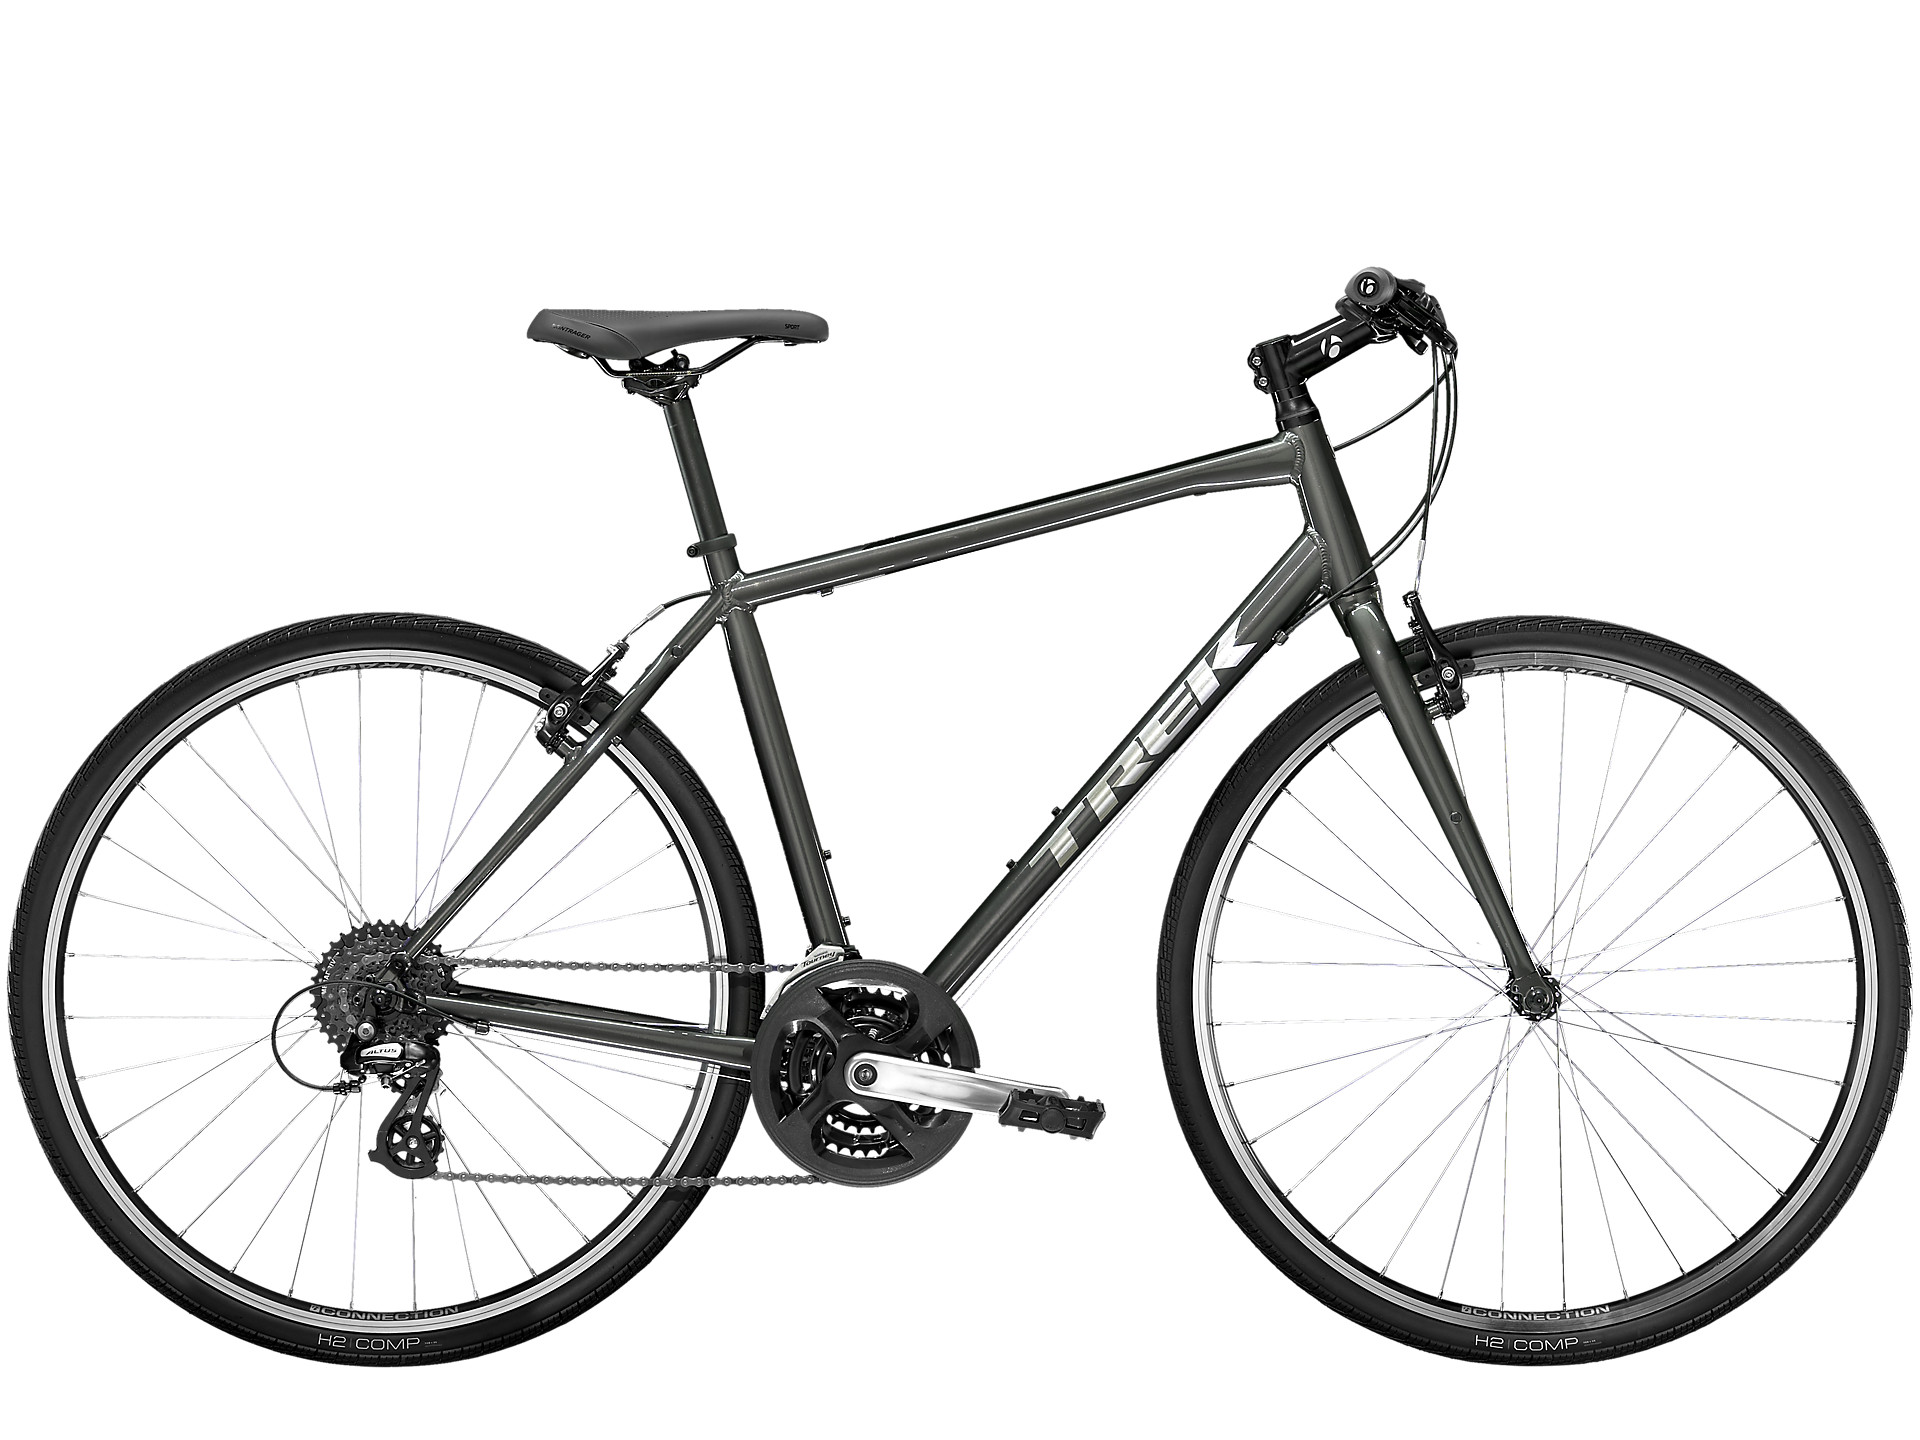 This gray colored Trek fitness bike is one of the cheapest in its class